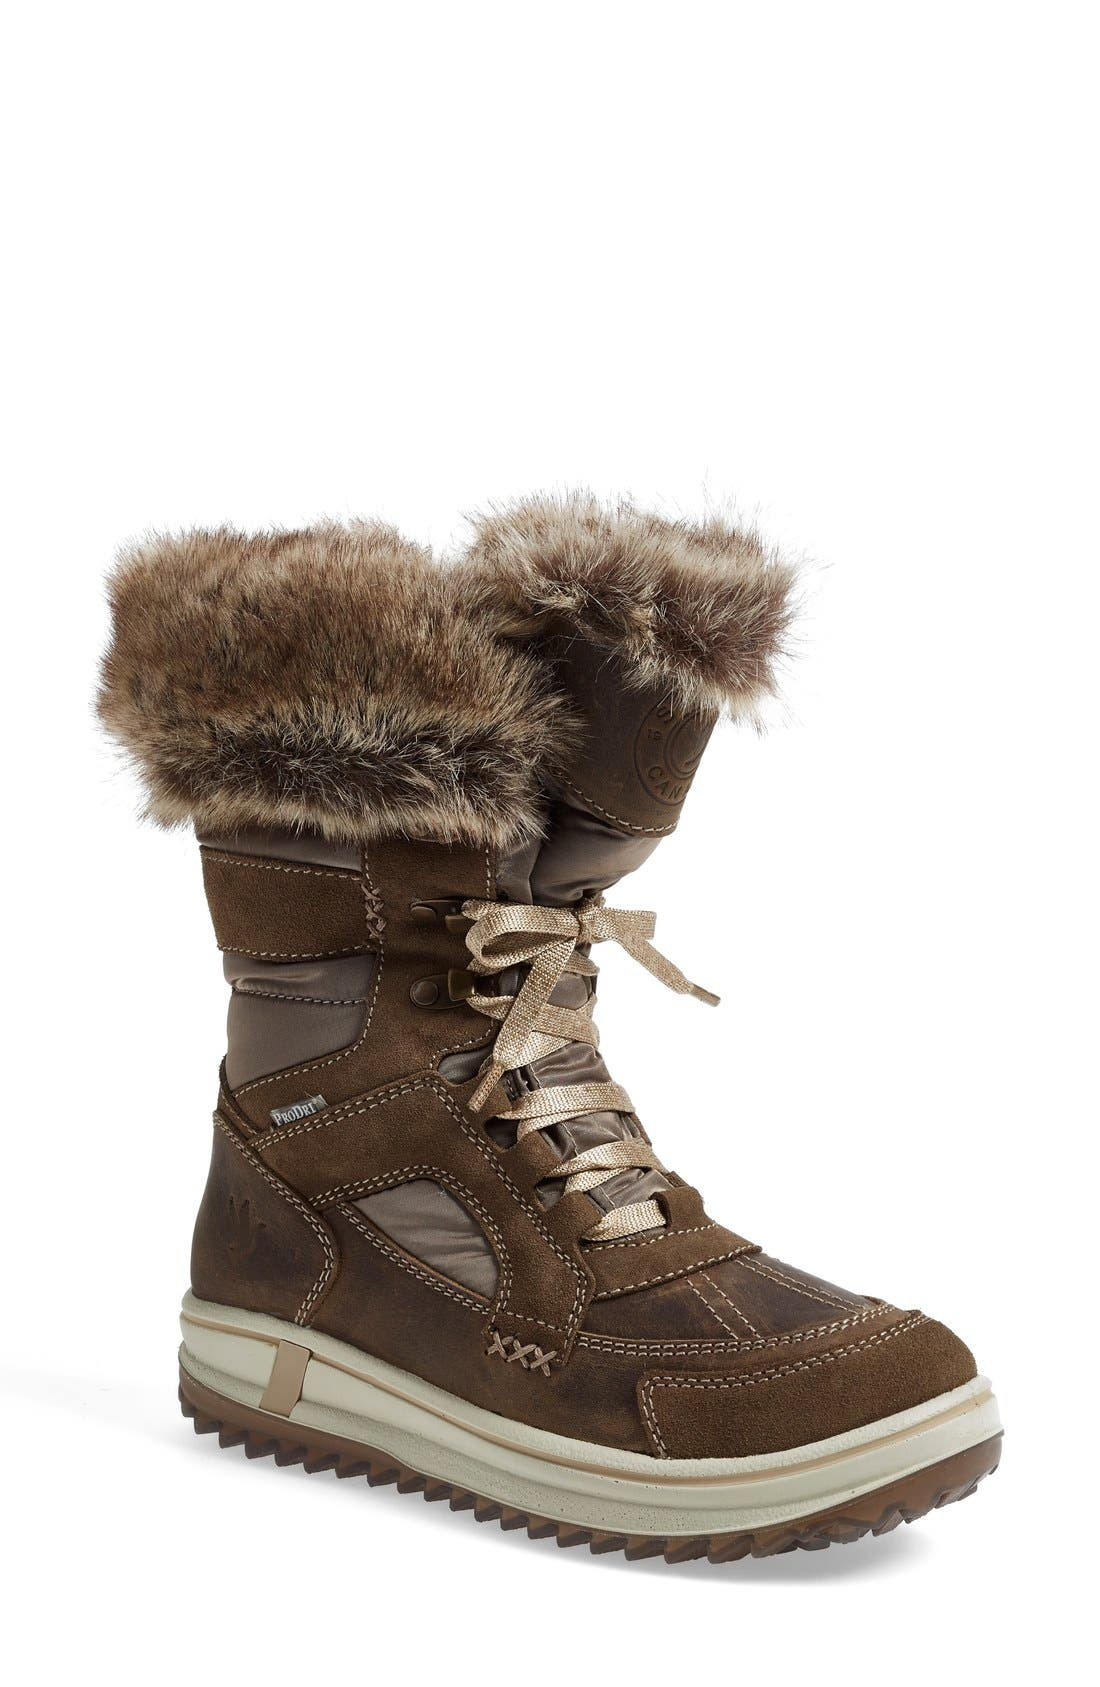 SANTANA CANADA 'Marta' Water Resistant Insulated Winter Boot